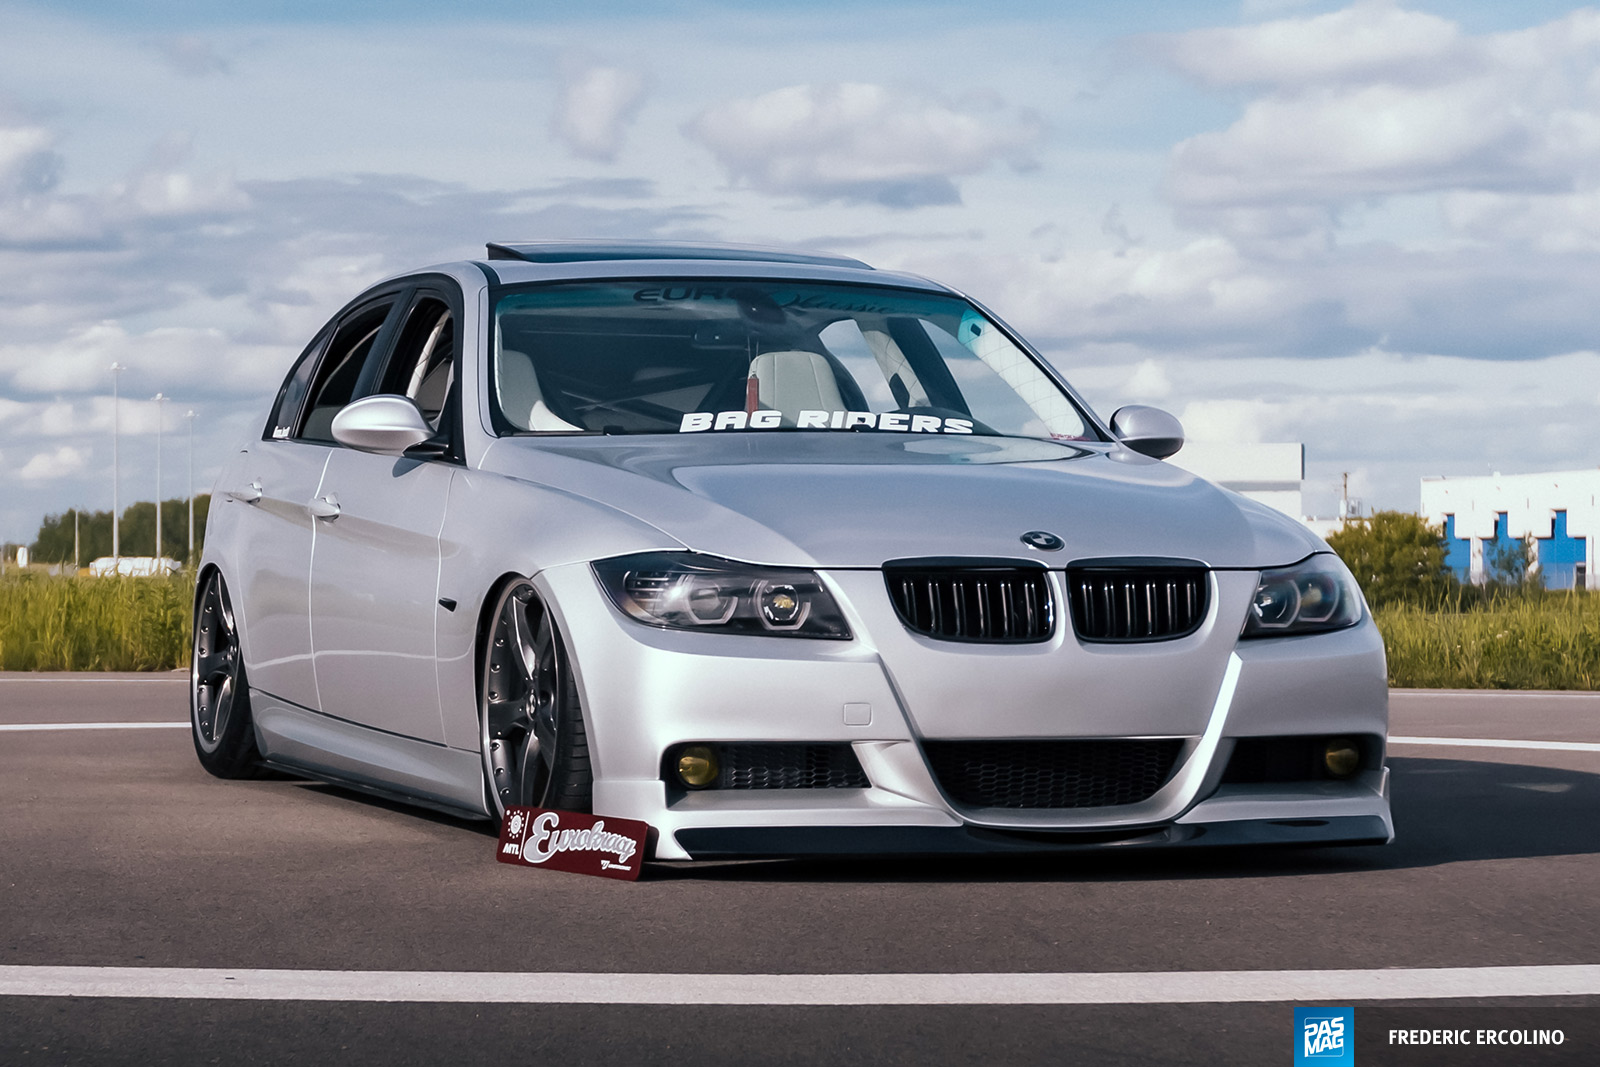 14 Marc Antoine Jeanson 2007 BMW 323i pasmag tuner battlegrounds